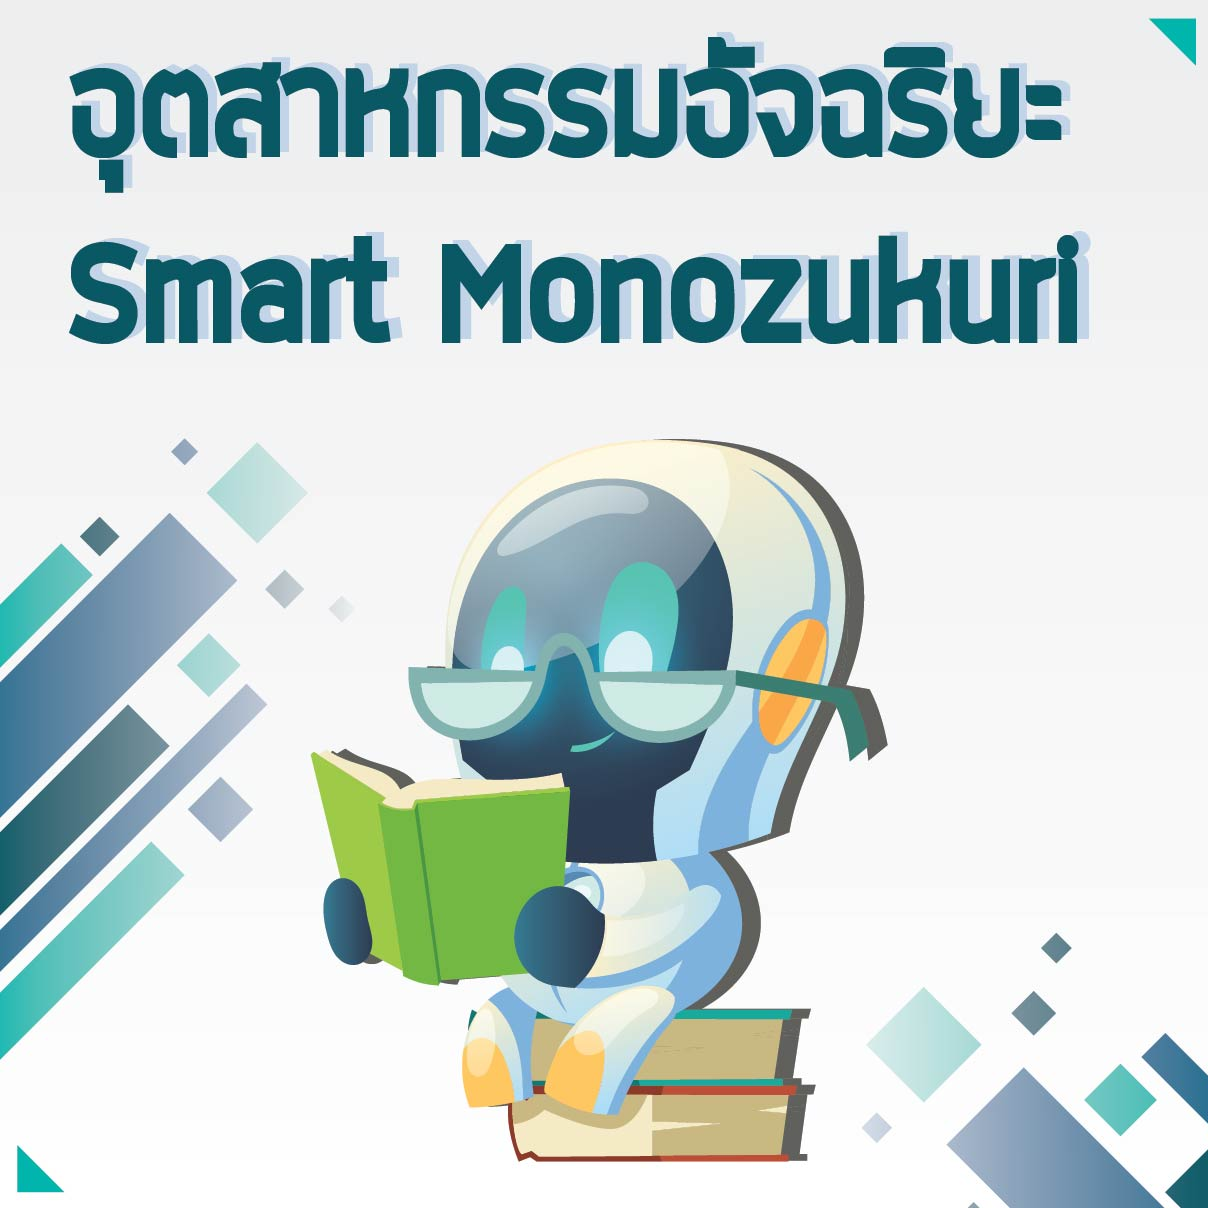 The implement for supporting Smart Monozukuri in Thailand 2020 Seminer